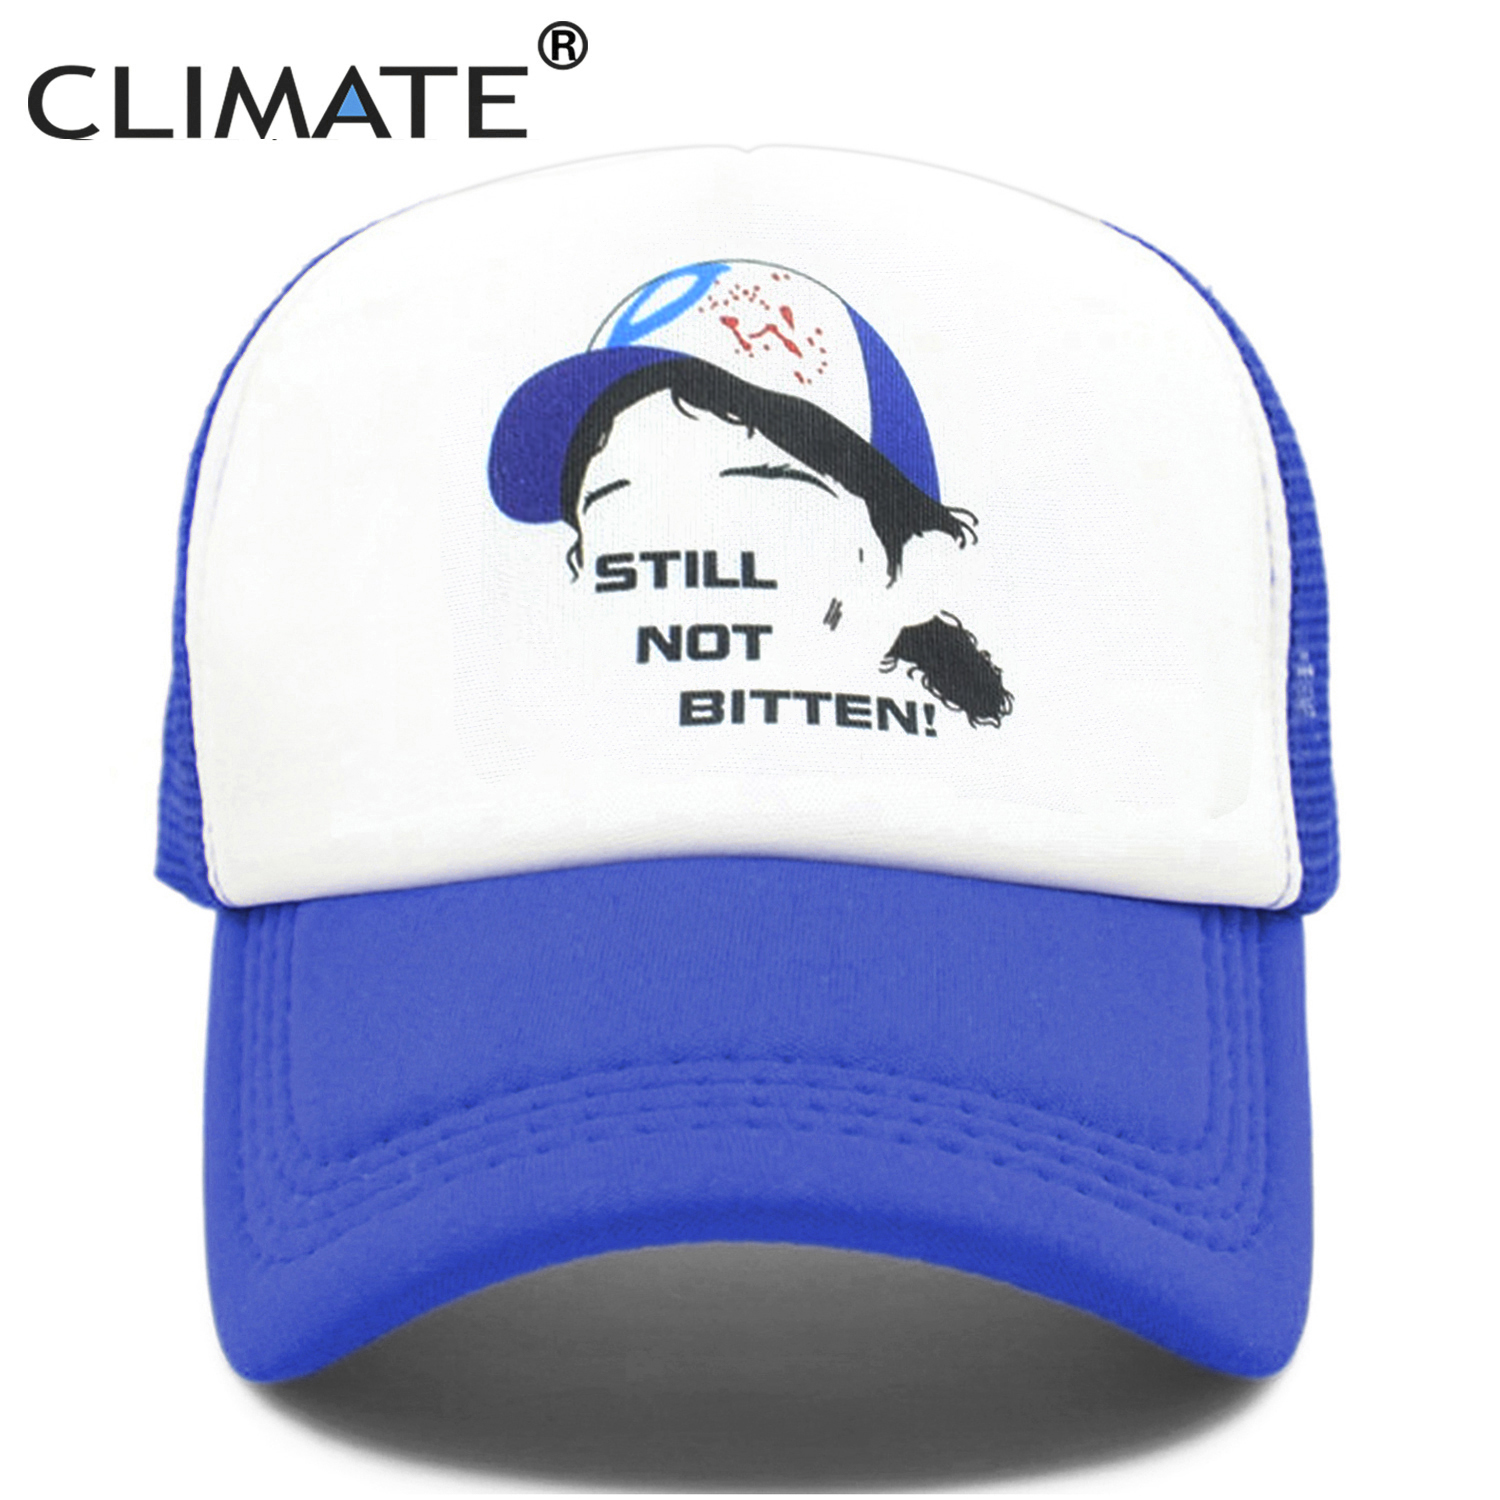 US $4 27 52% OFF|CLIMATE The Walking Die Game Clementine Cosplay Caps Hat  Clem's Girl Coser Zombie Killer Cap Summer Cool Trucker Caps Hats-in Men's